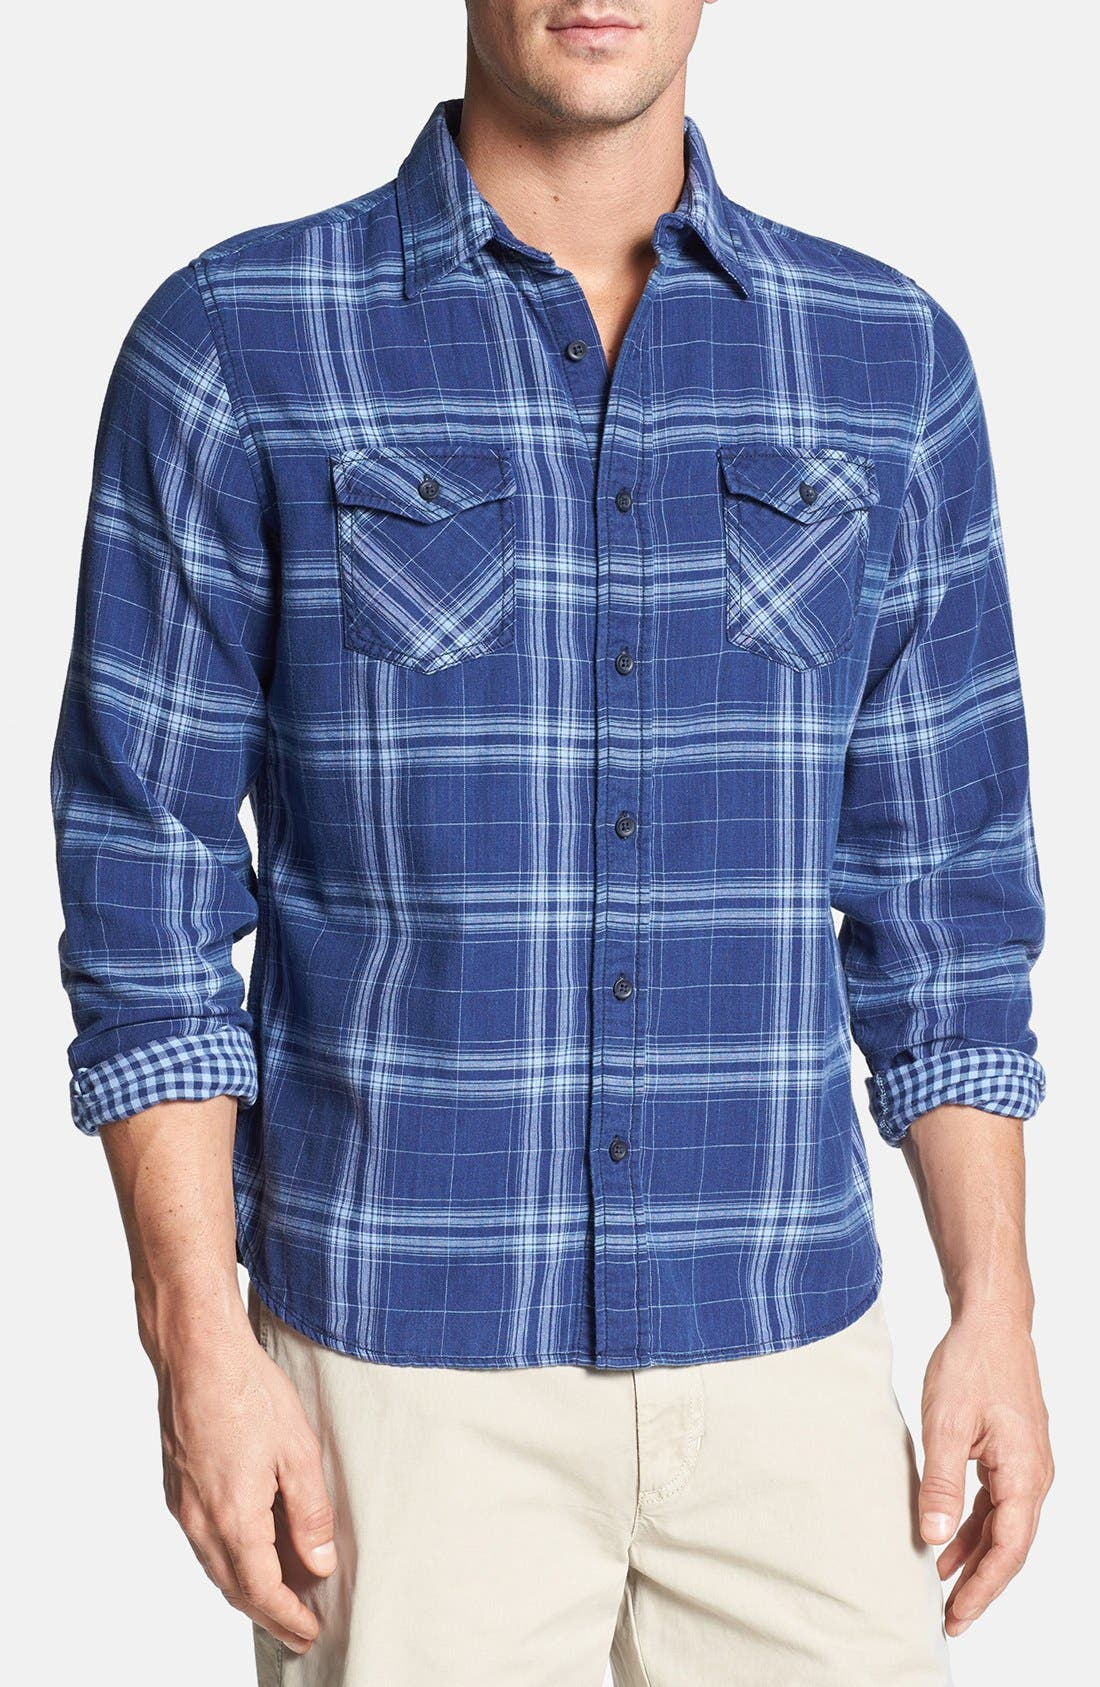 Main Image - Surfside Supply Double Face Plaid Cotton Shirt